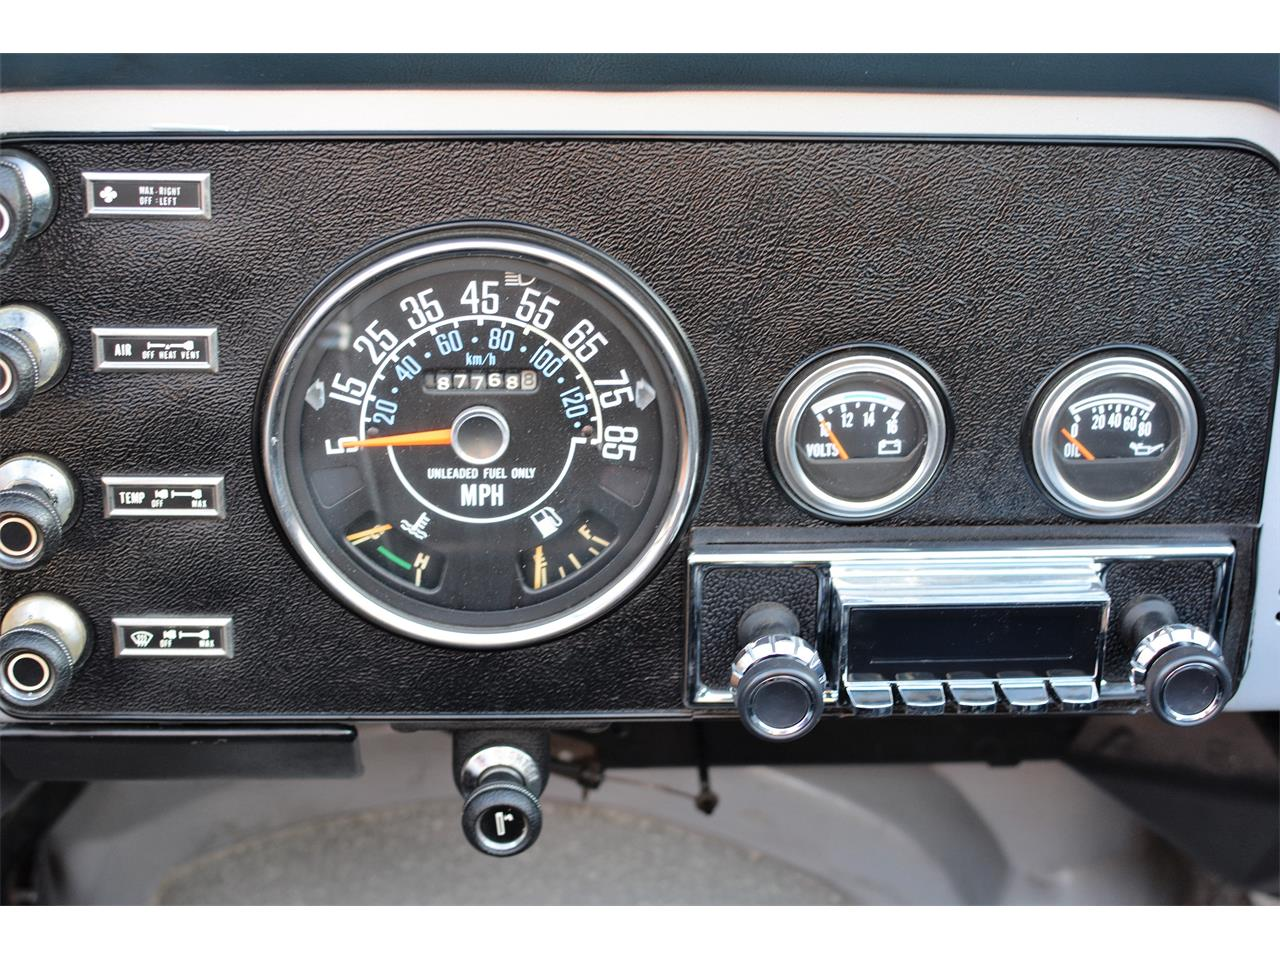 Large Picture of 1983 Jeep Wrangler Offered by a Private Seller - LHRY